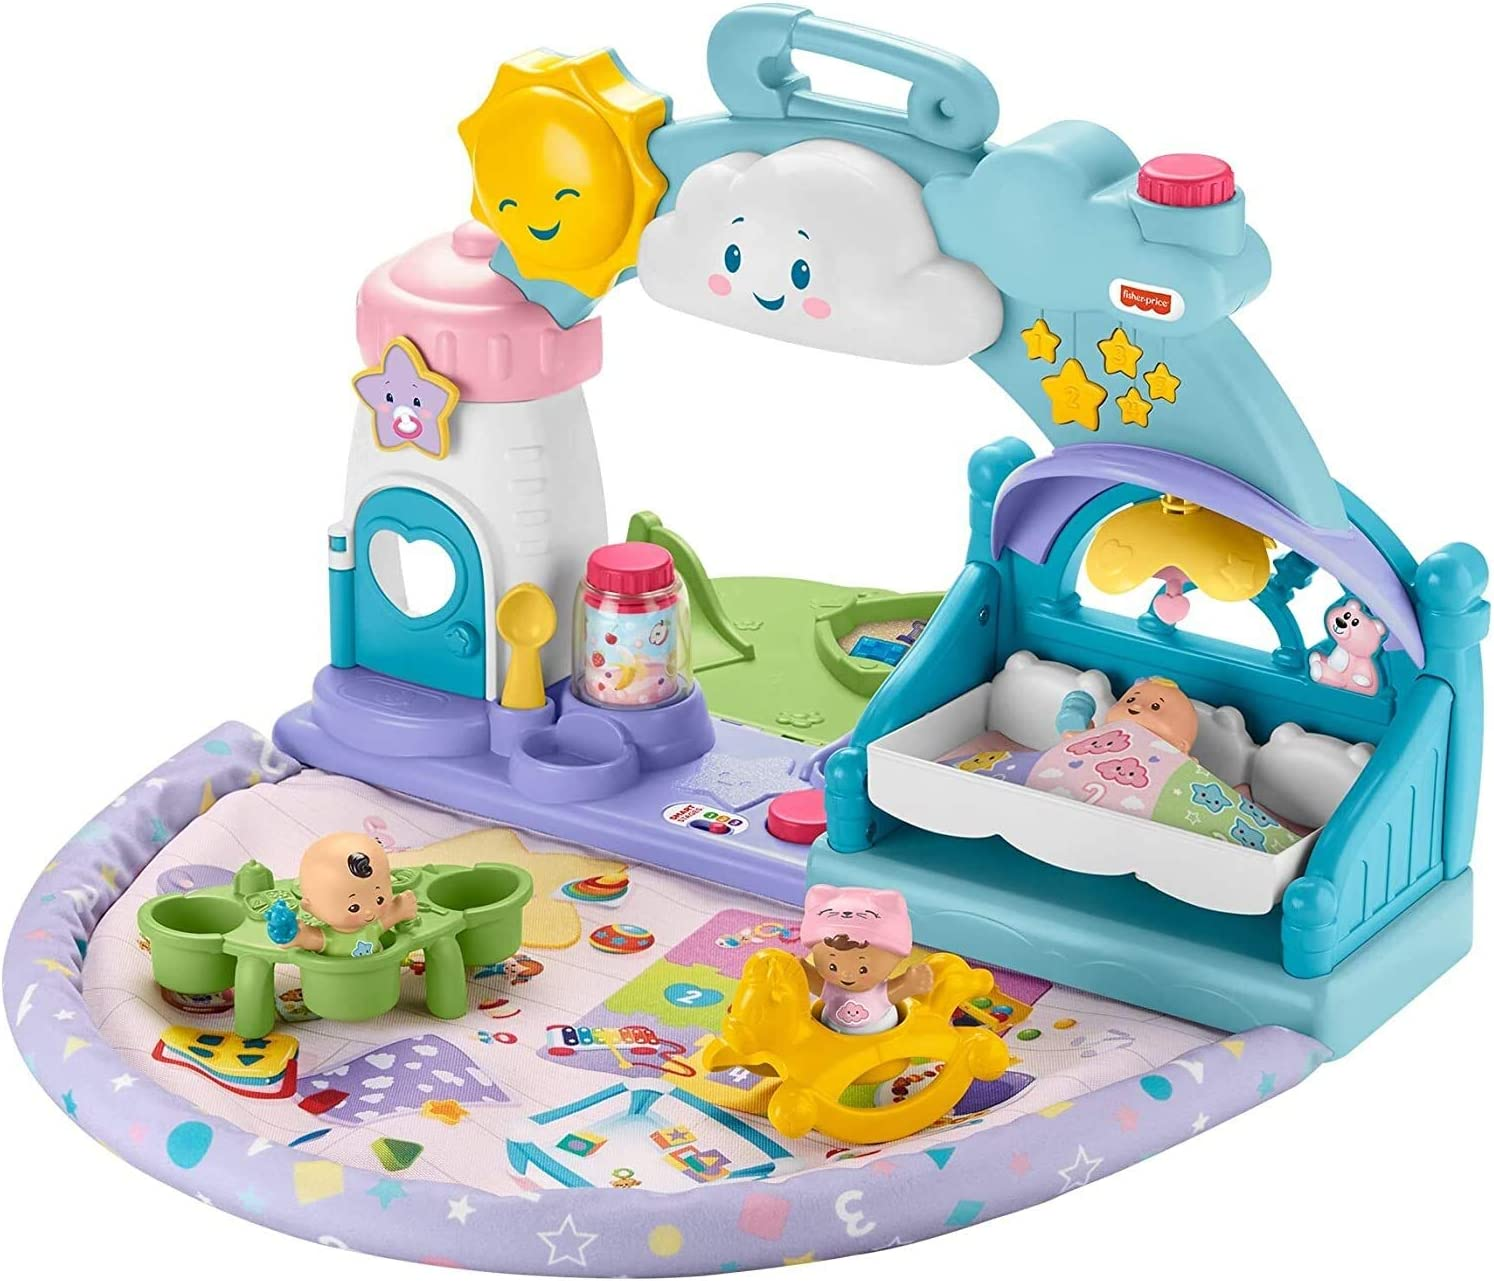 Fisher-Price Little People 123 Babies Playdate, musical take-along playset with Smart Stages for toddlers and preschool kids